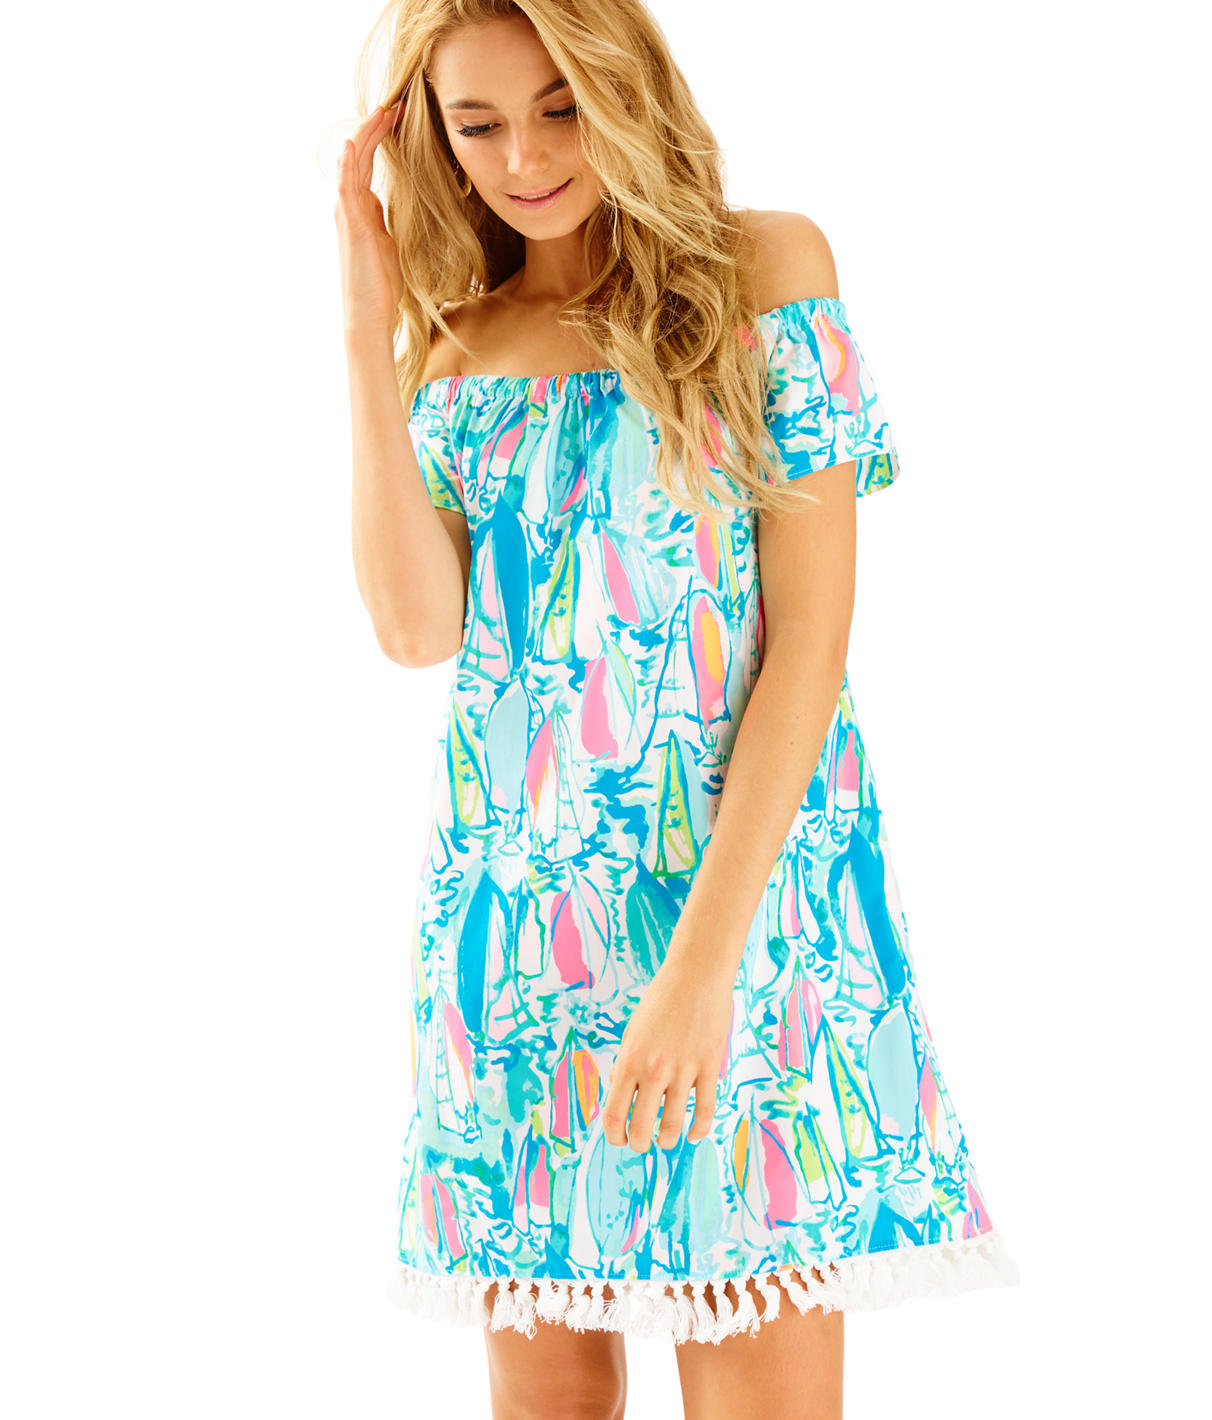 Lilly Pulitzer Marble Off The Shoulder Dress - Sunglow